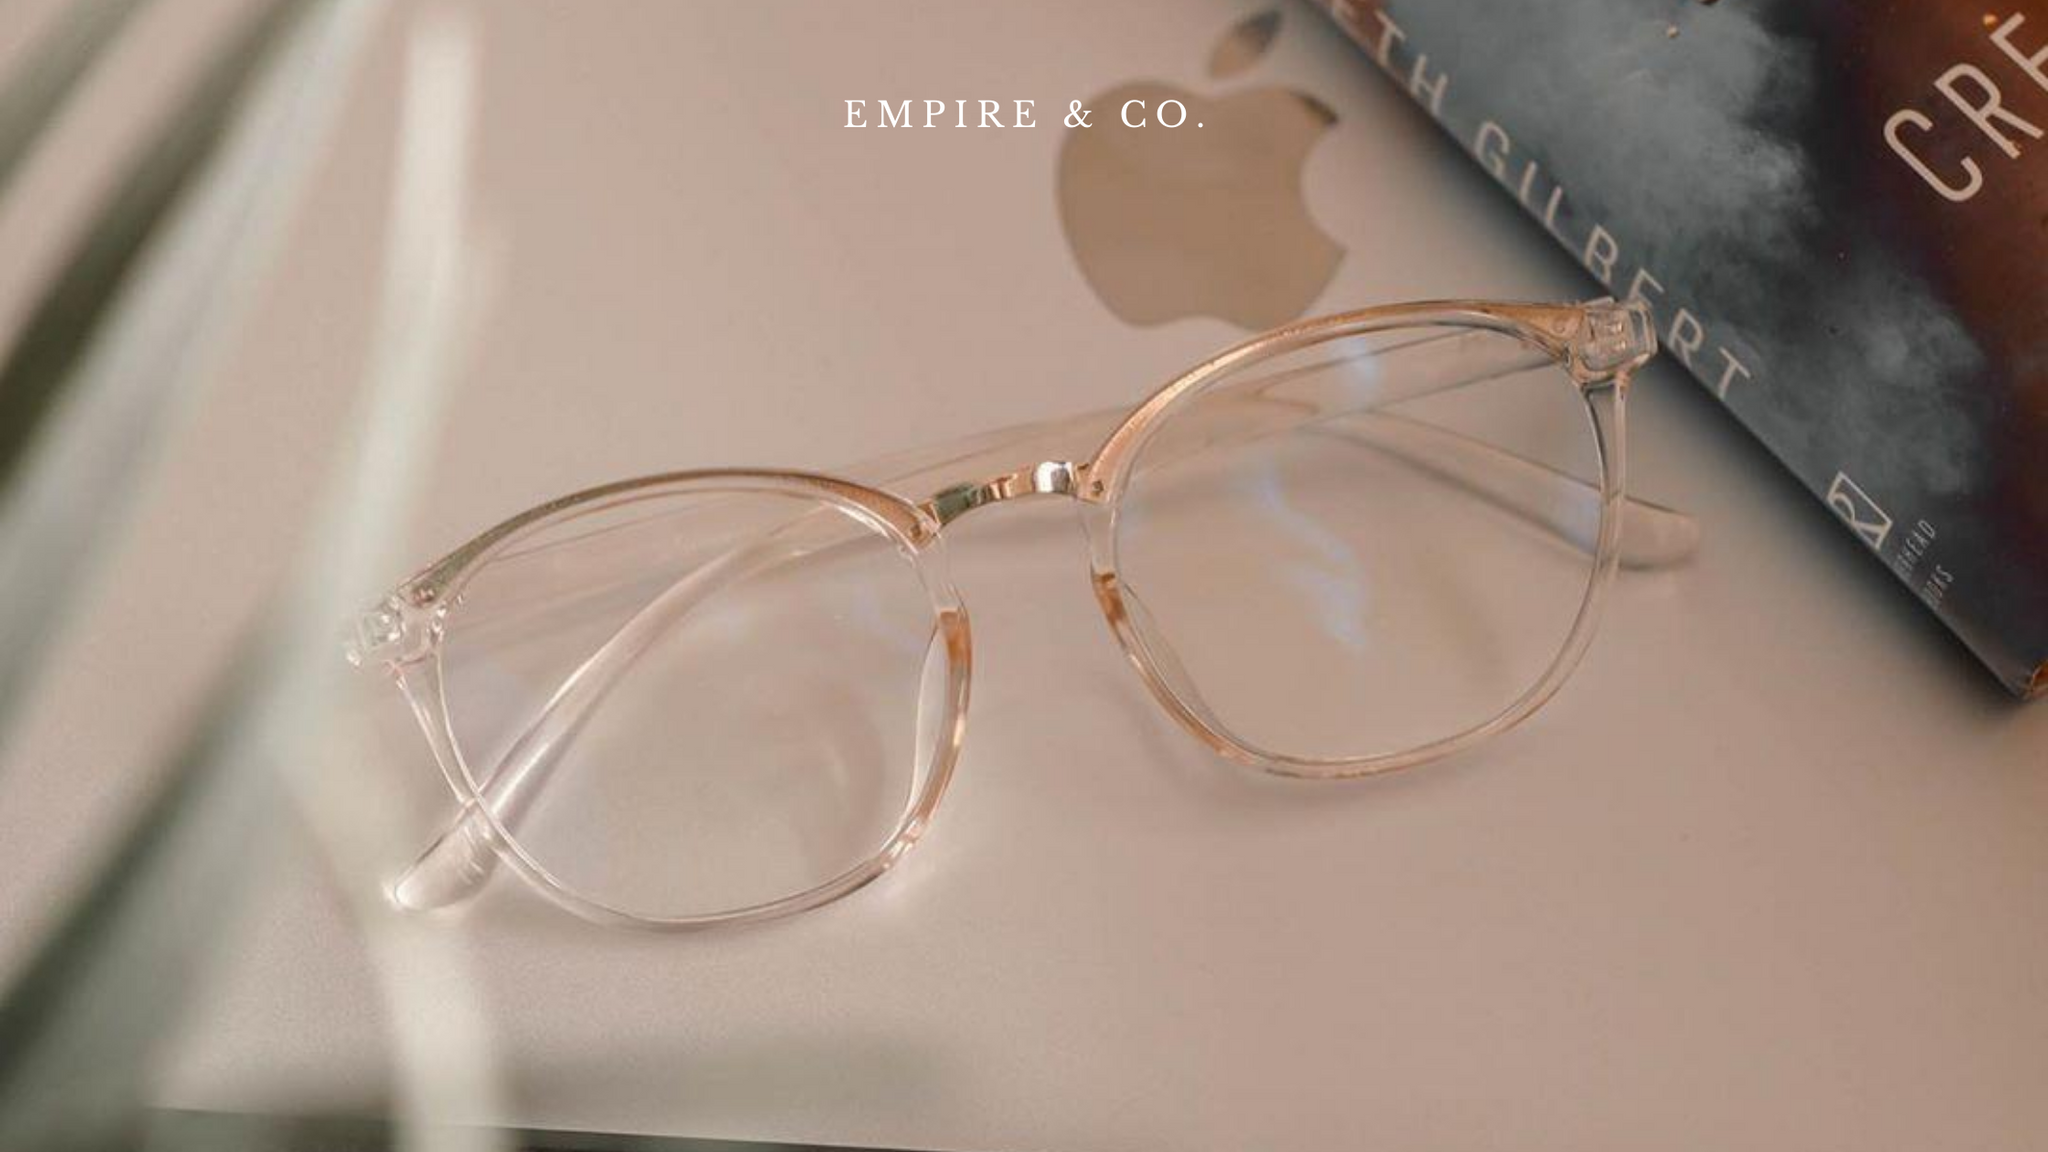 Empire & Co Goal Digger blue light blocking glasses